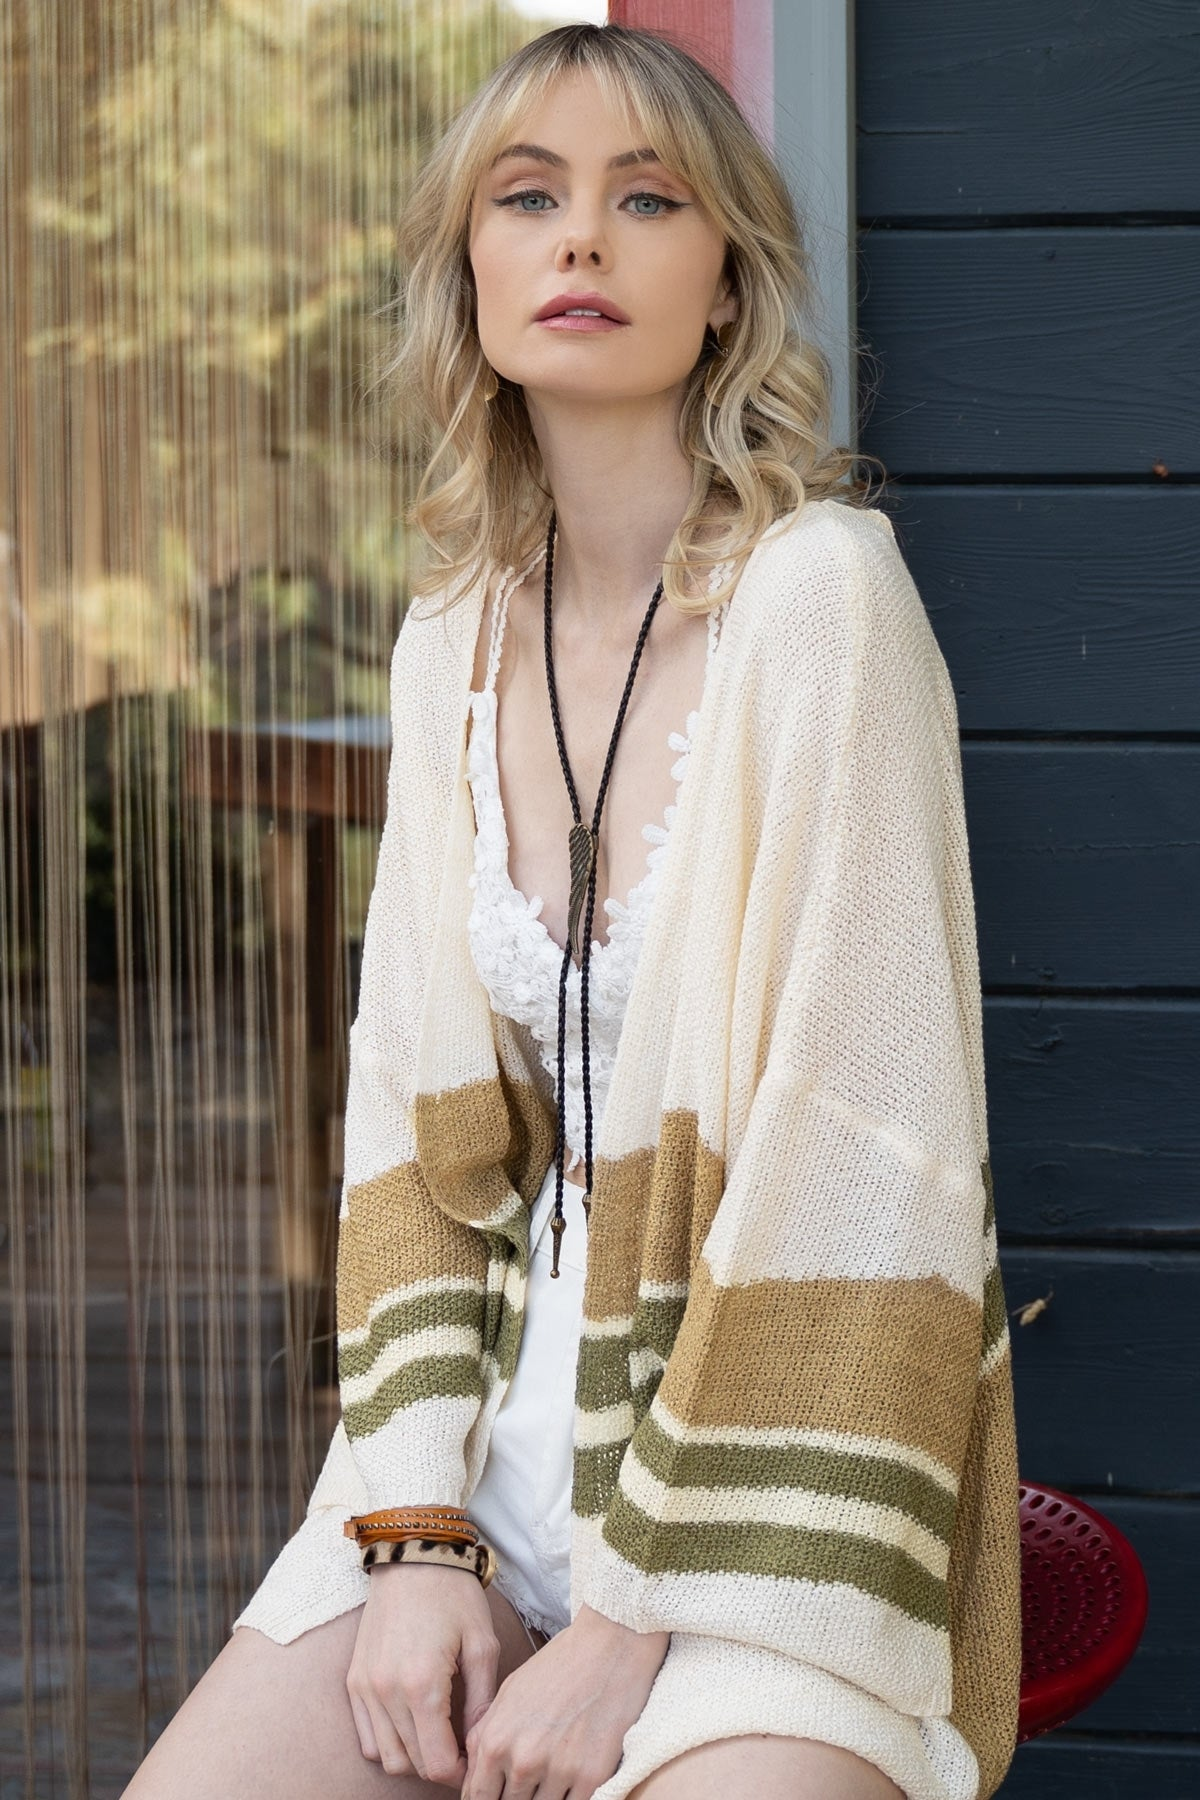 Olivia Striped Cardigan